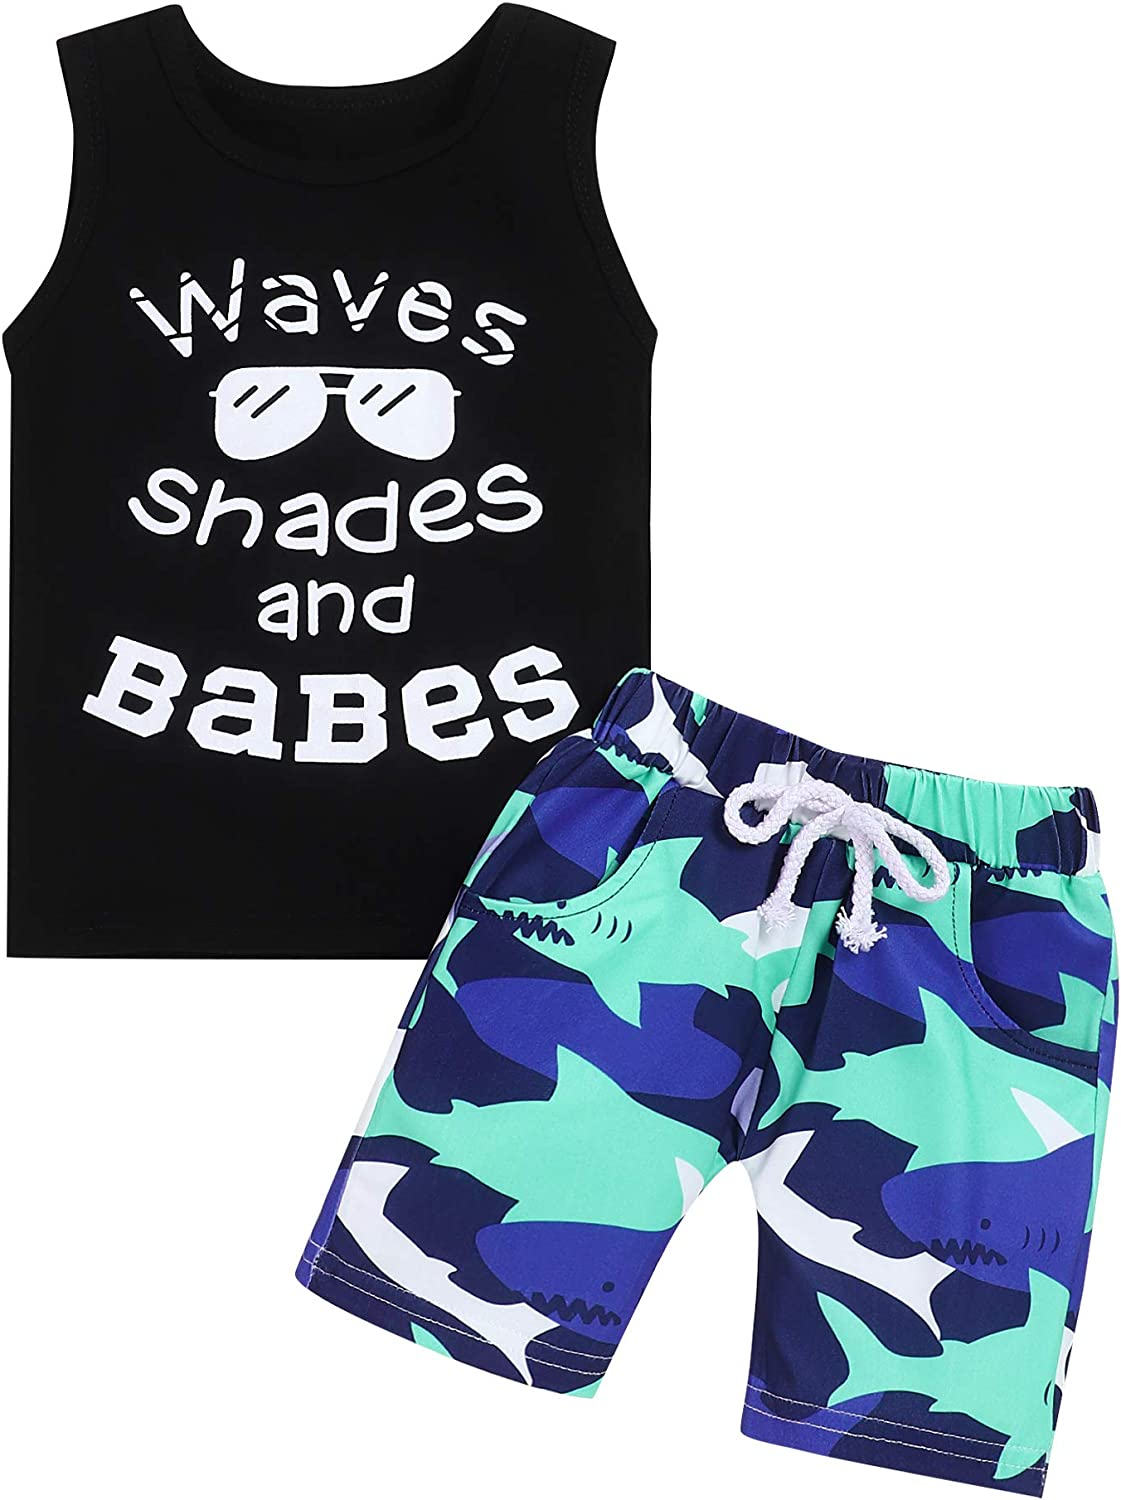 Toddler Boys Summer Clothes unisex Ranking integrated 1st place Boy Dress Baby Todd Shorts Shirt